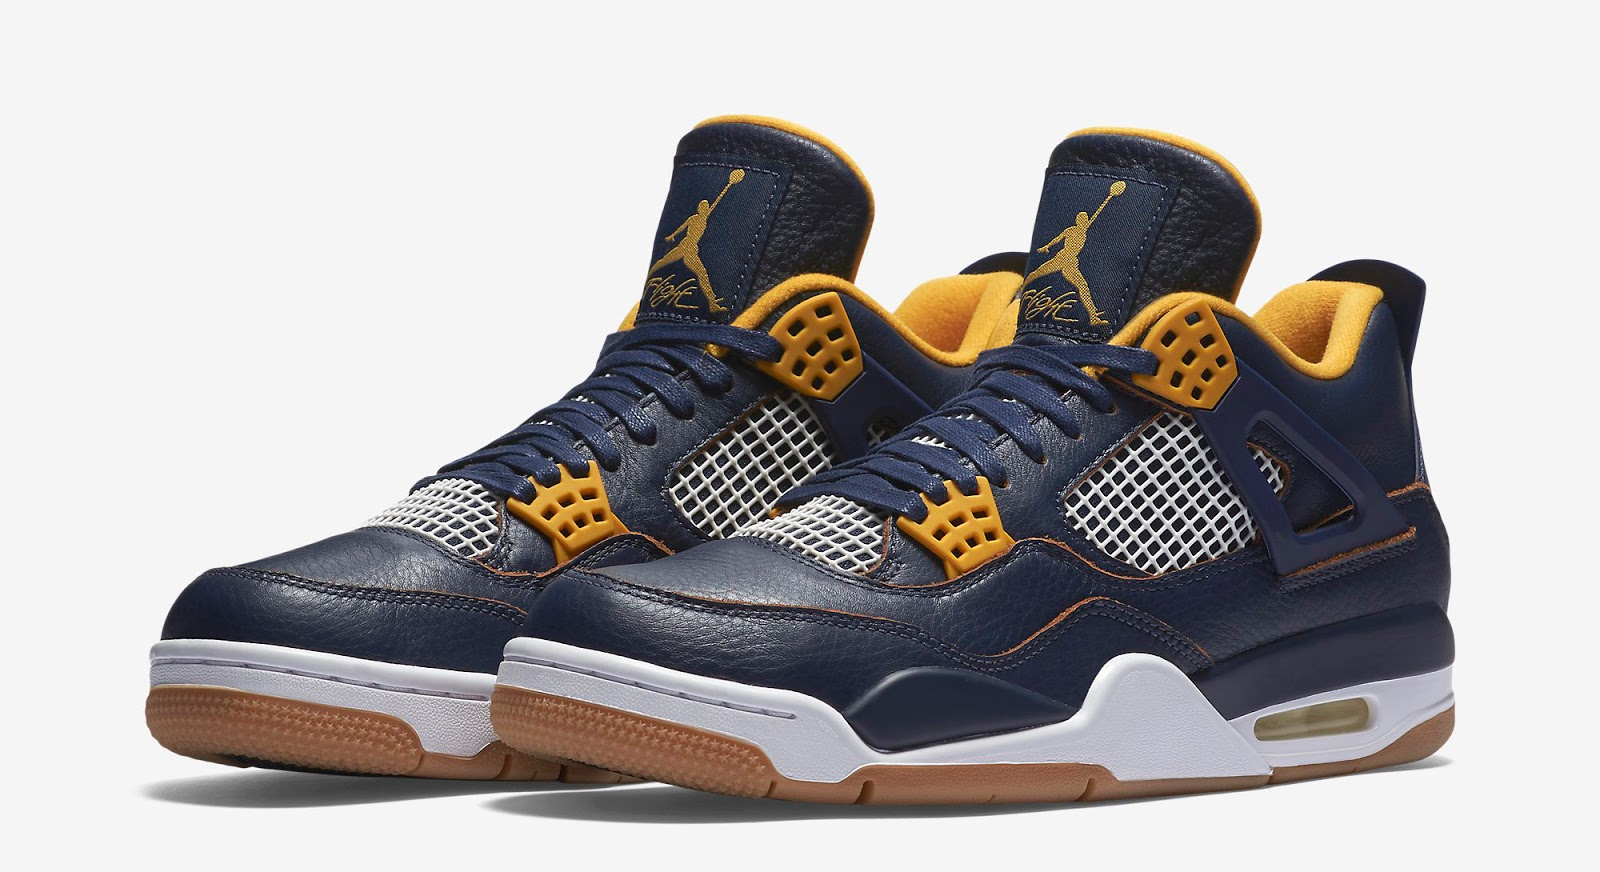 Air Jordan 4 Retro Midnight Navy/Gold Leaf/White/Metallic Gold